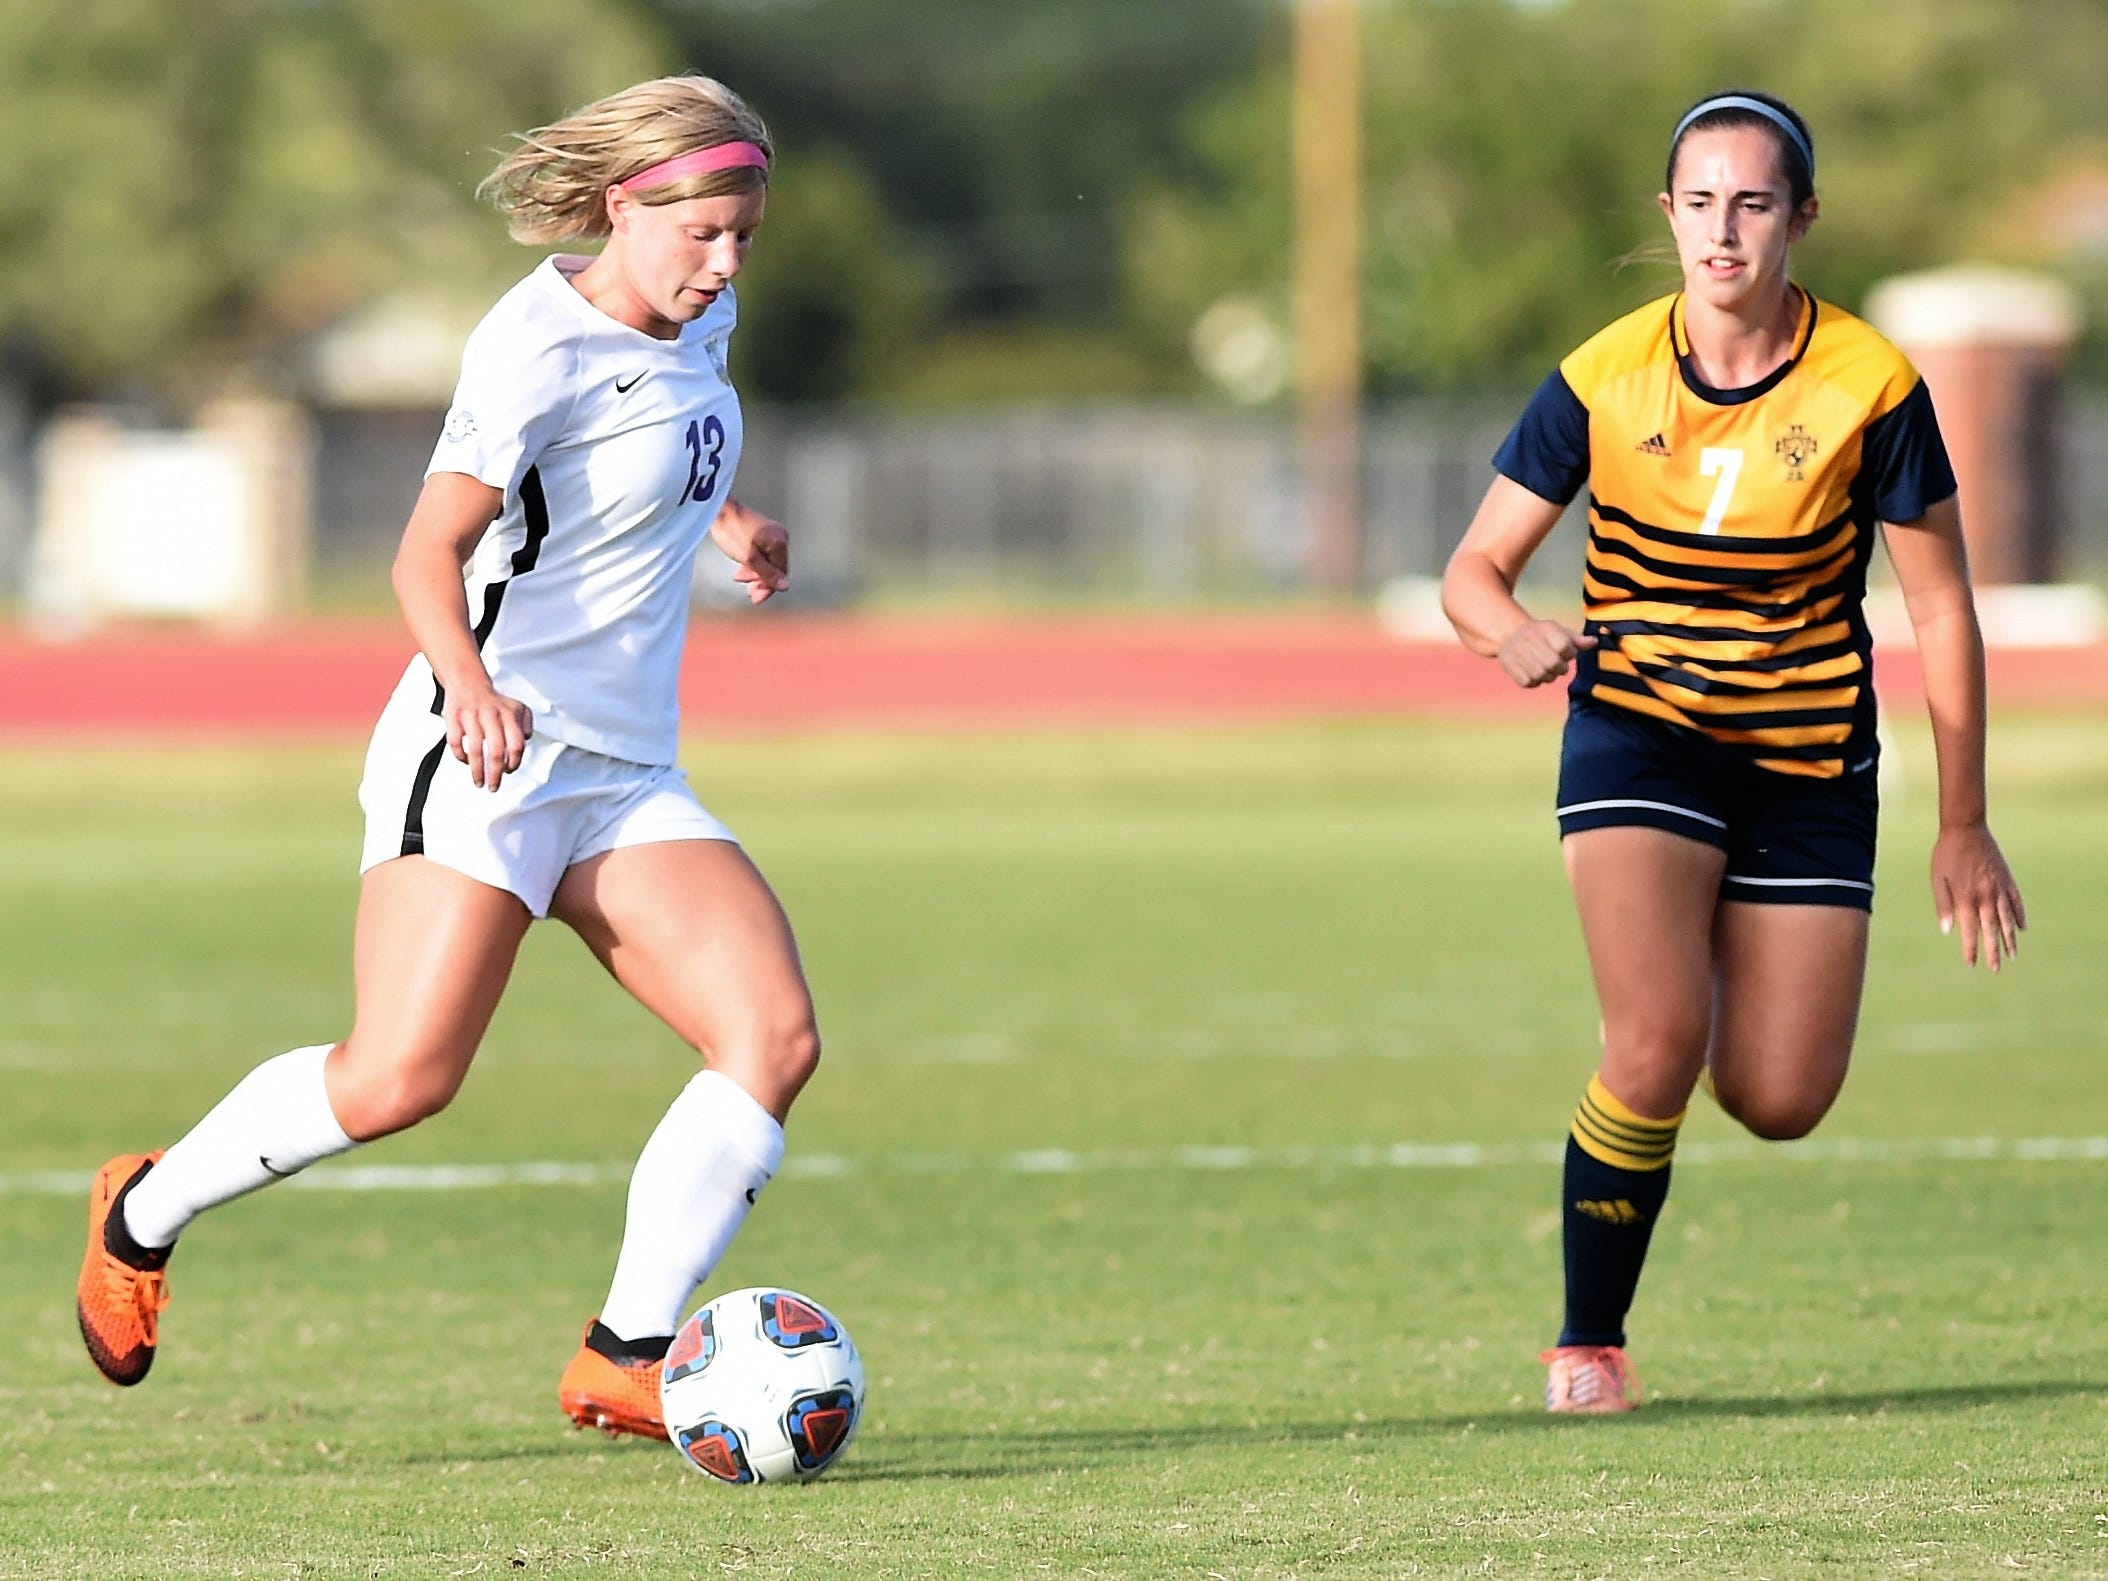 Hardin-Simmons midfielder Josey Meyer (13) plays the ball against Howard Payne at the HSU Soccer Complex on Thursday, Oct. 11, 2018. The Cowgirls won 4-1.